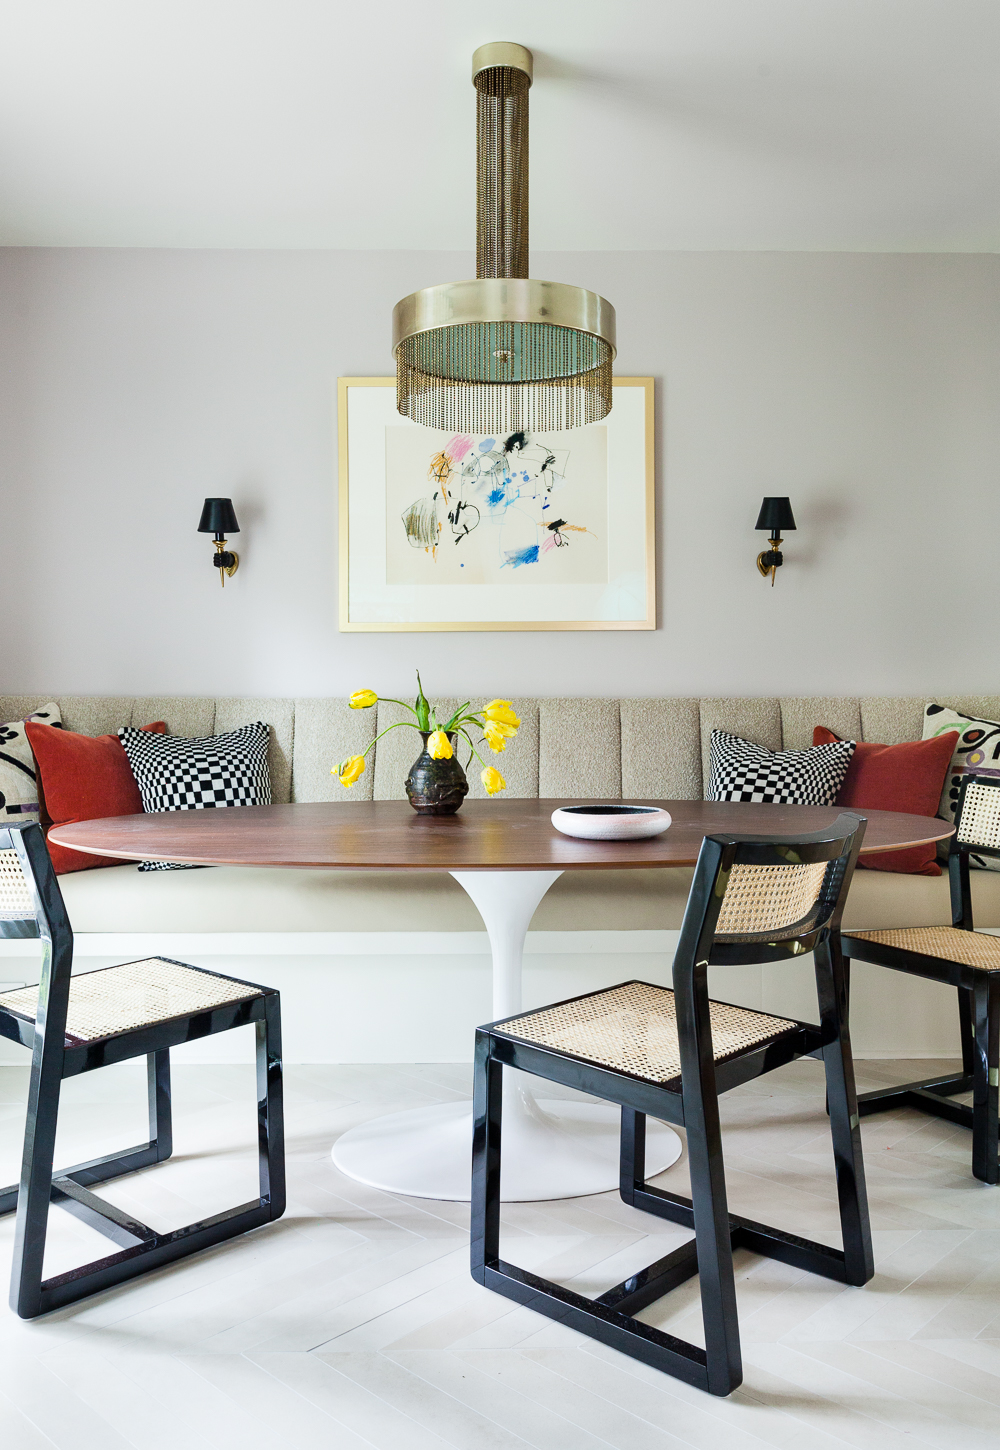 CB2 Makan chairs with walnut tulip table and custom banquette with Fabricut fabric. Vintage brass fringe Pierre Cardin chandelier and art by Nancy Lee. Arbus hand sconces.